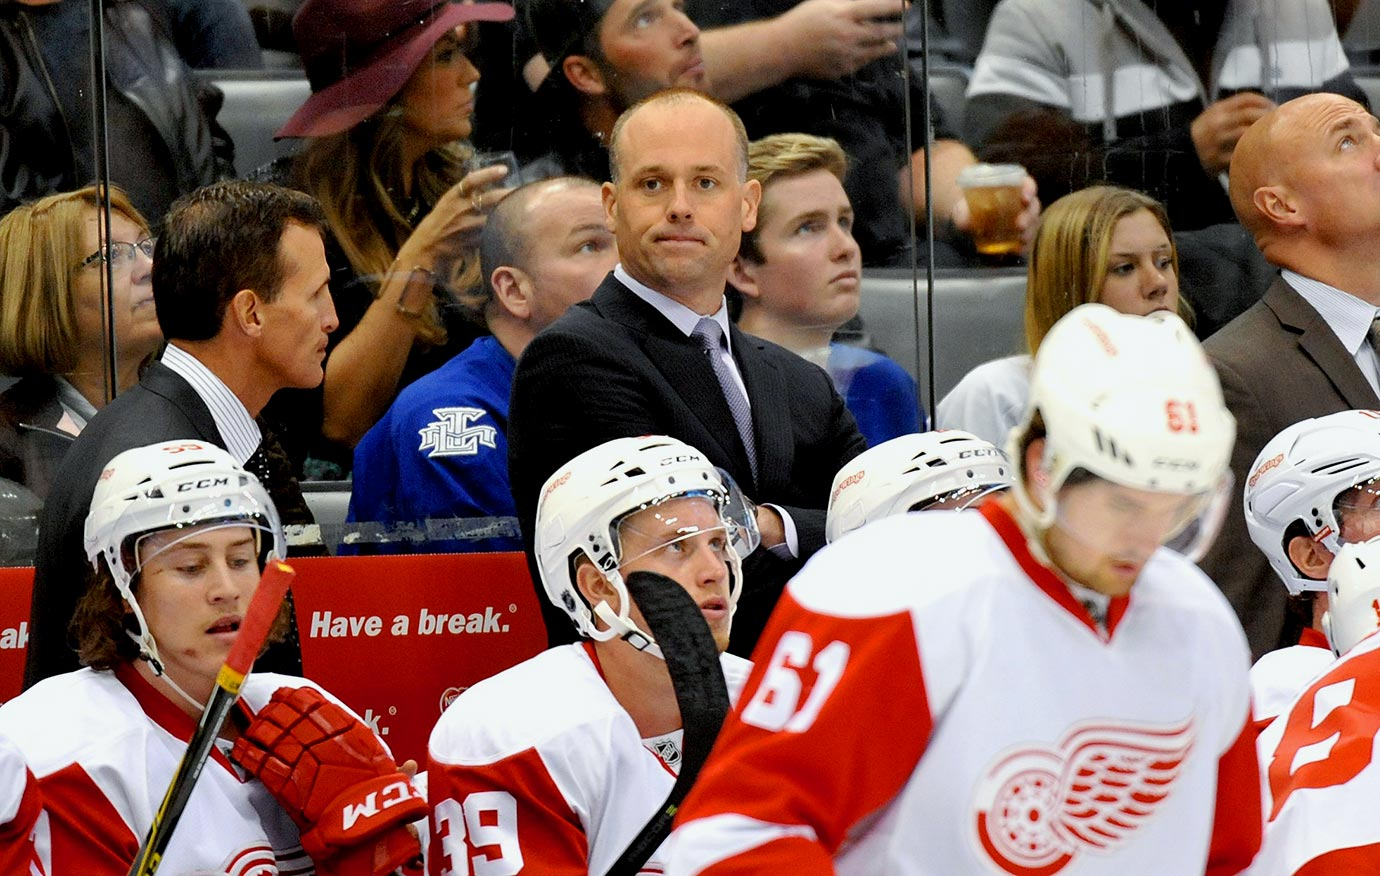 Mike Babcock is gone, replaced behind the bench by the promising but unproven Jeff Blashill. They aren't sure whether veteran Jimmy Howard is their starter or if playoff hero Petr Mrazek is ready for the role. They'll start the season with several key injuries, including the irreplaceable Pavel Datsyuk. And let's face it—that playoff streak has gotta end some time.